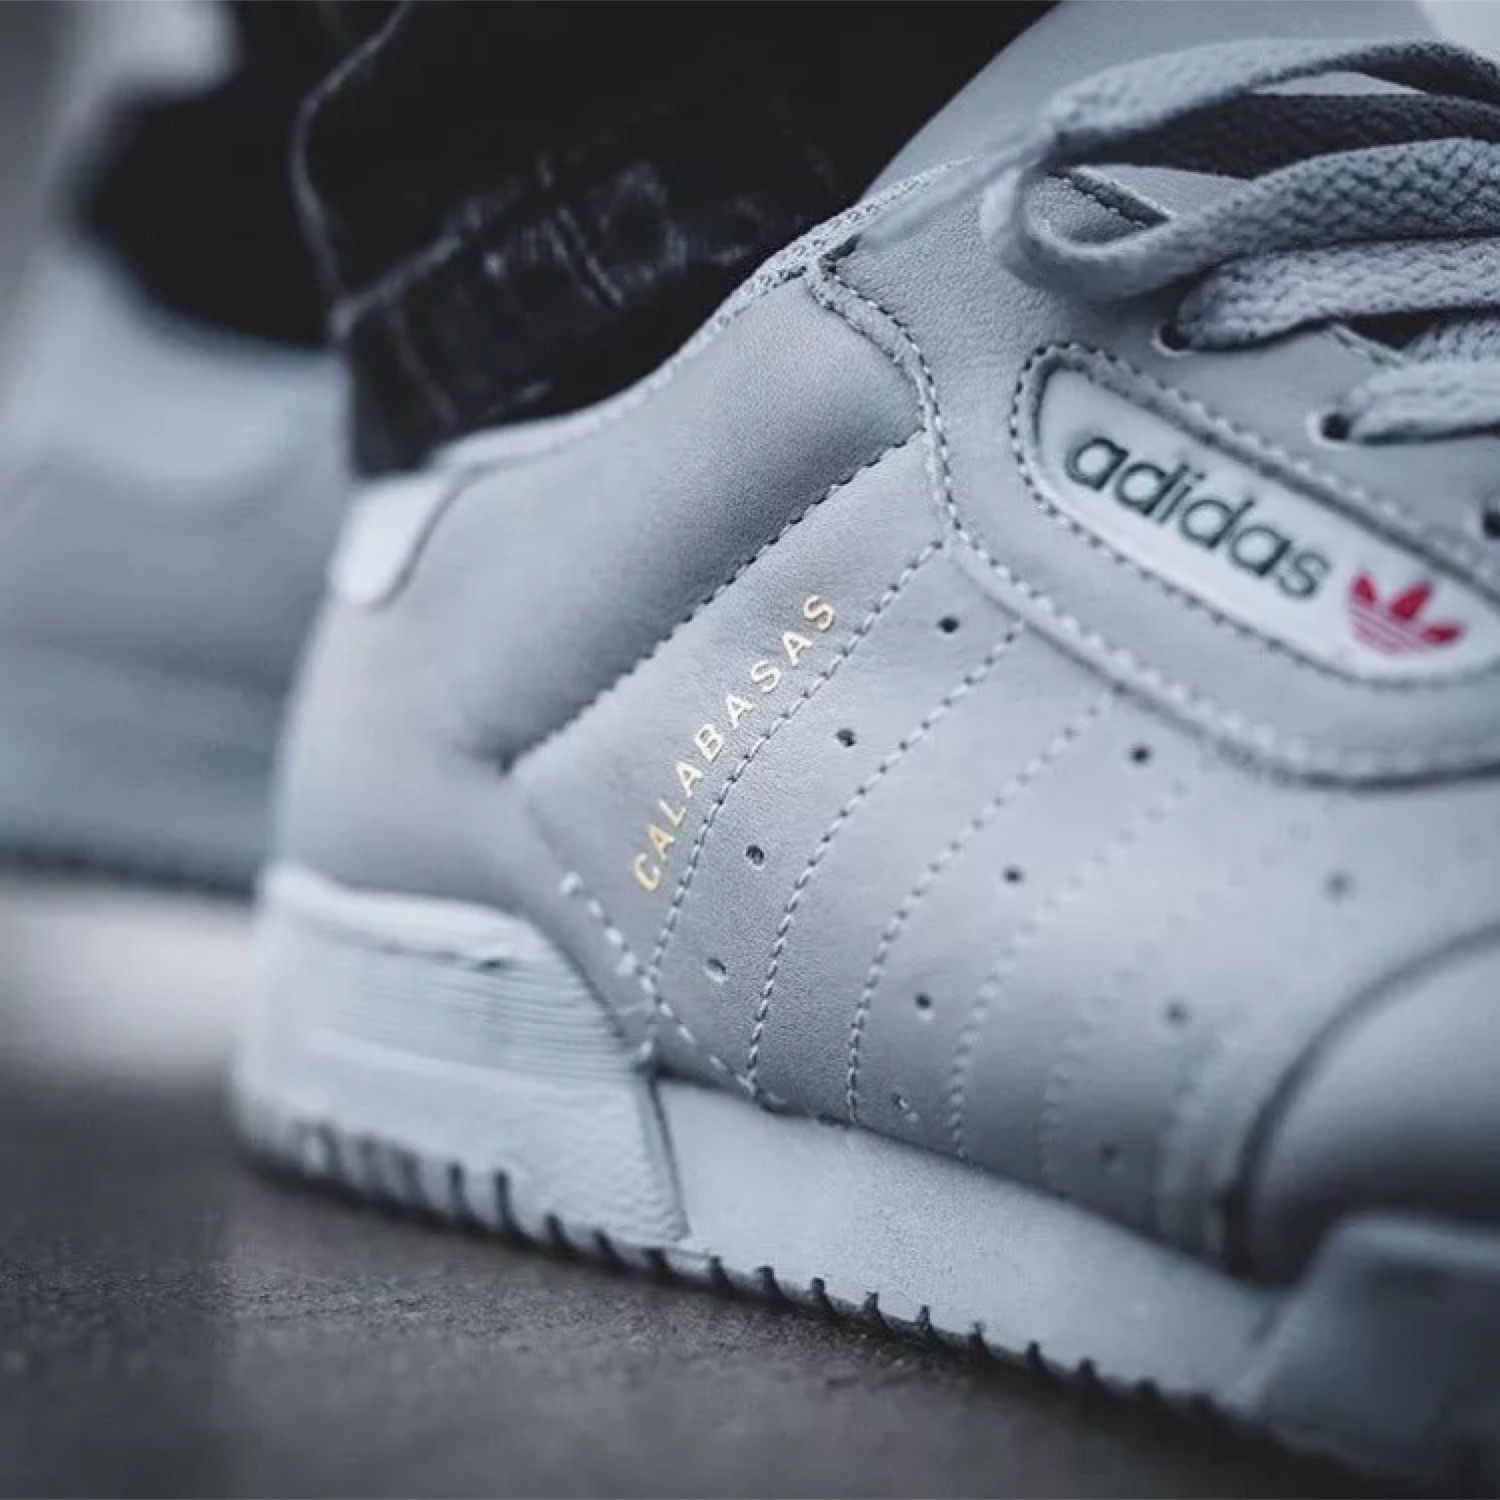 sports shoes 64f99 fc8e0 Adidas Yeezy Powerphase Calabasas   Grey   Size 9